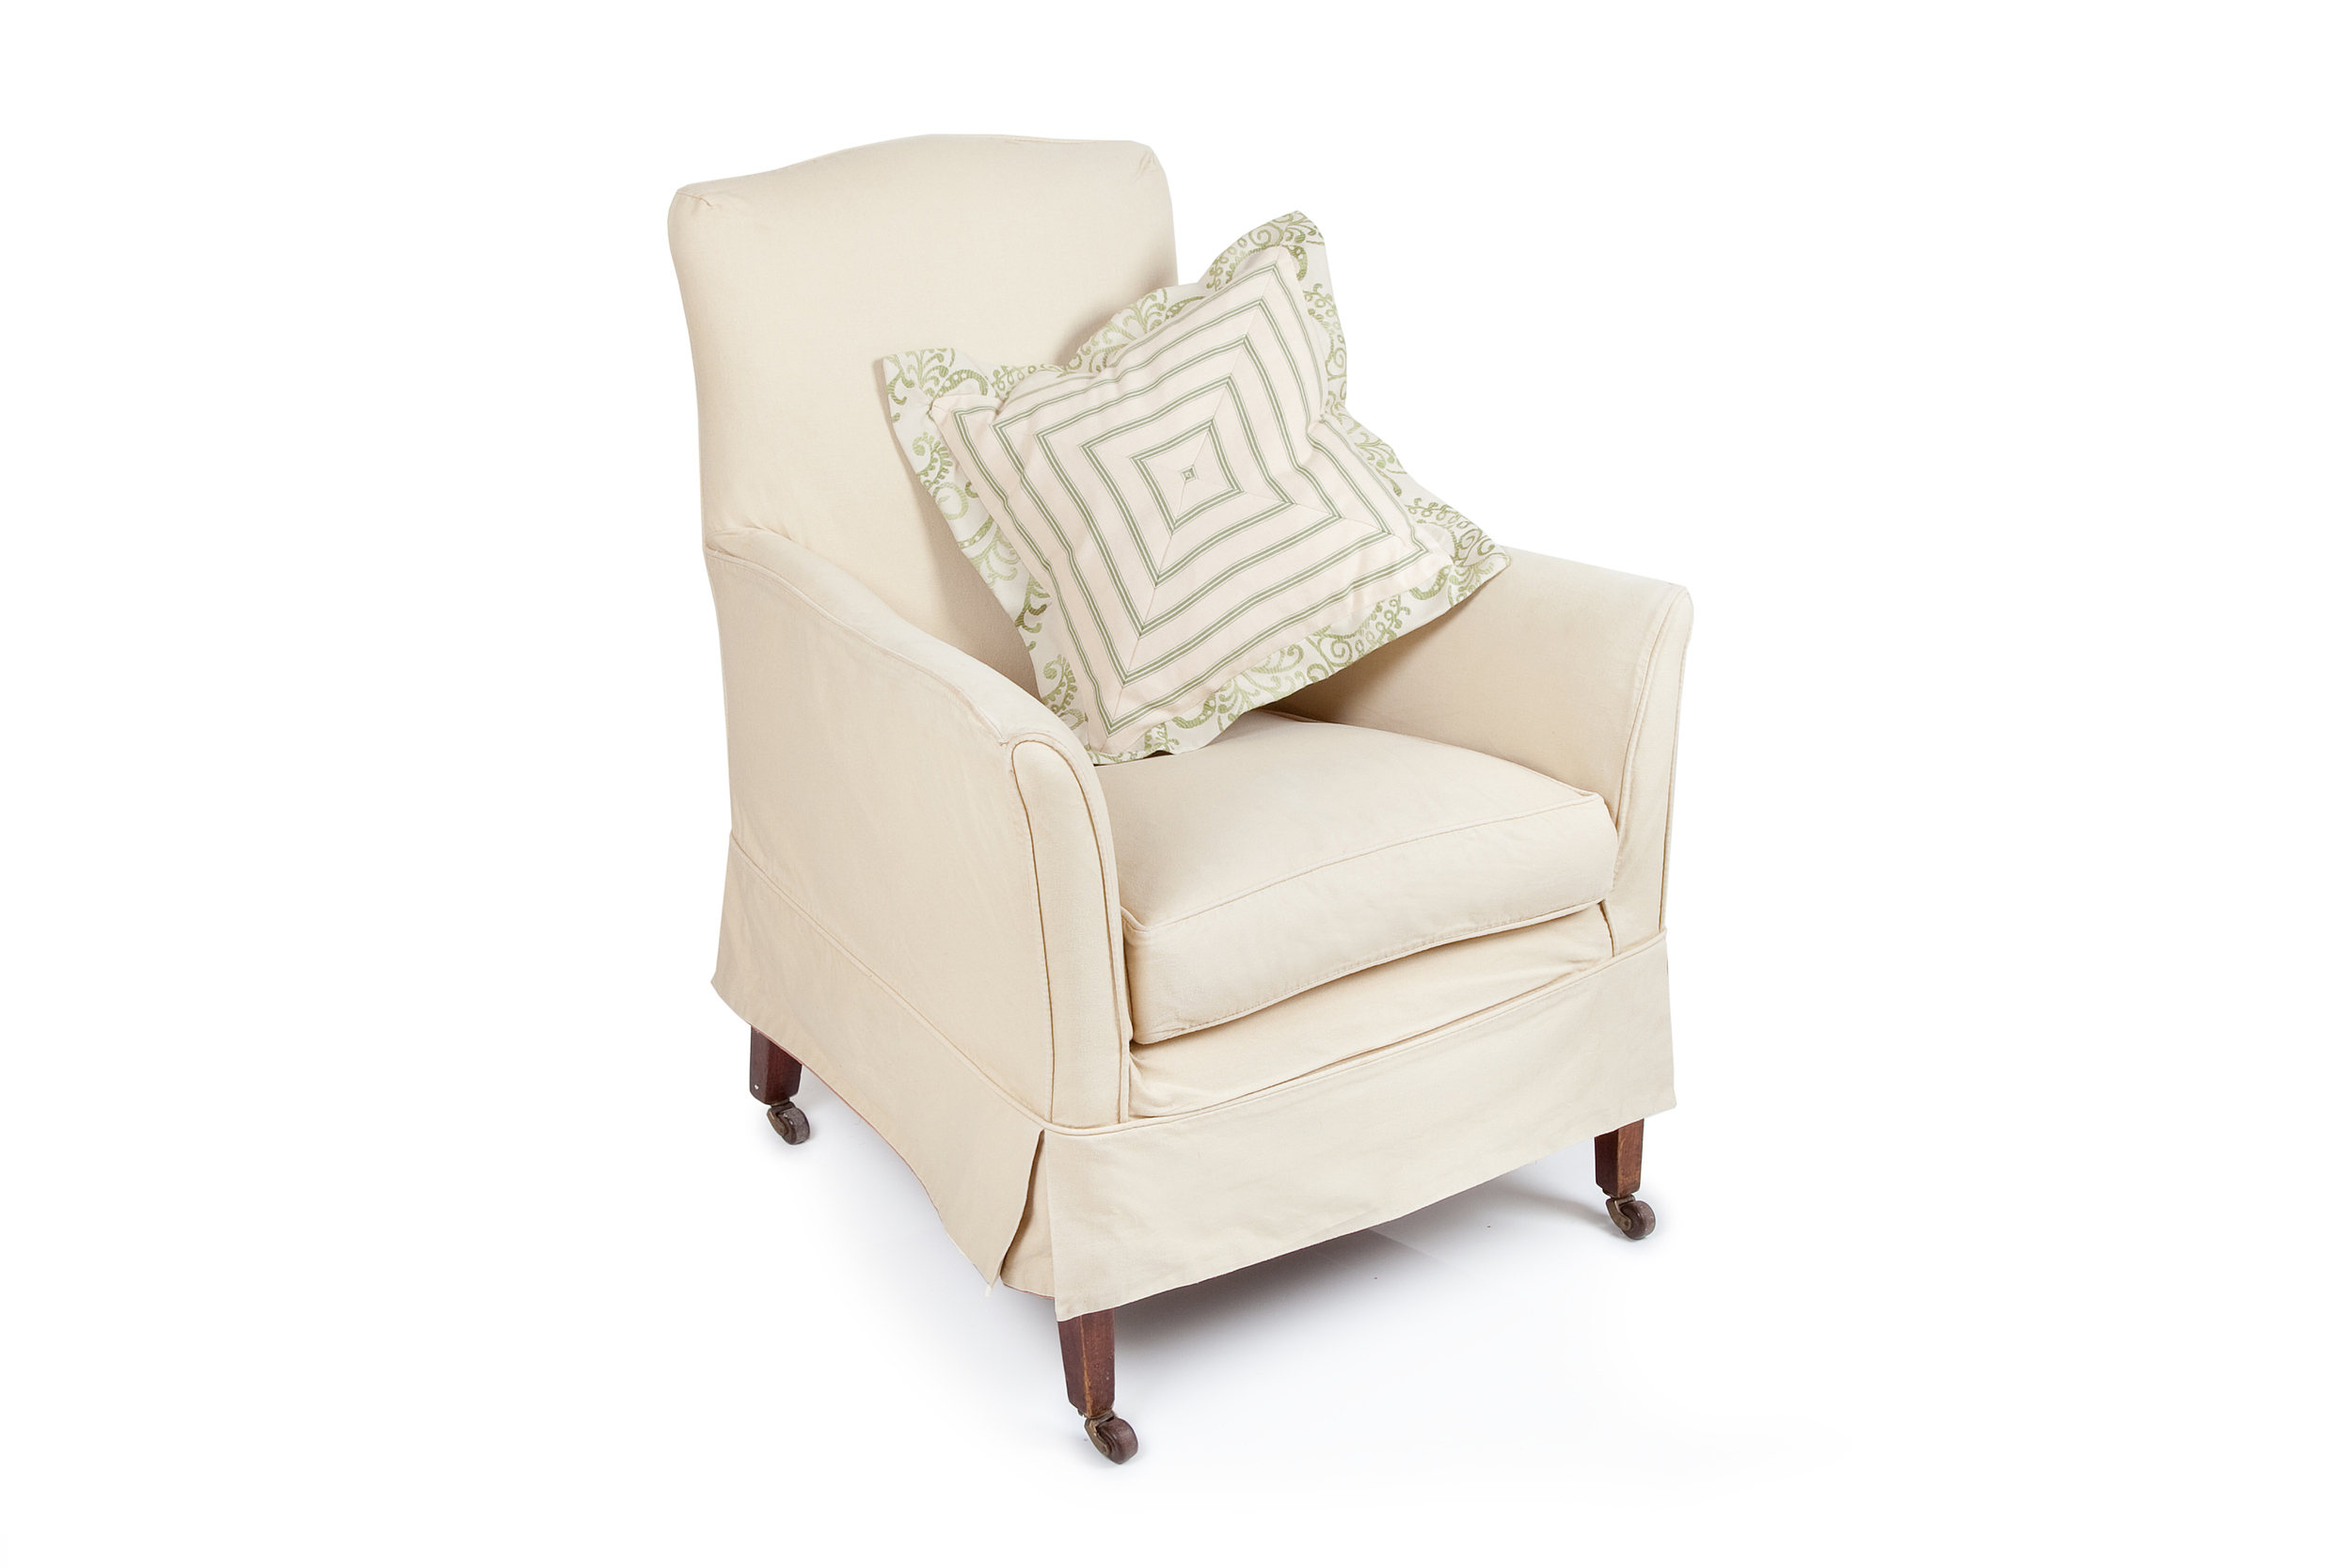 Parlour chair in calico with loose cover and feather and down cushion, brass castors